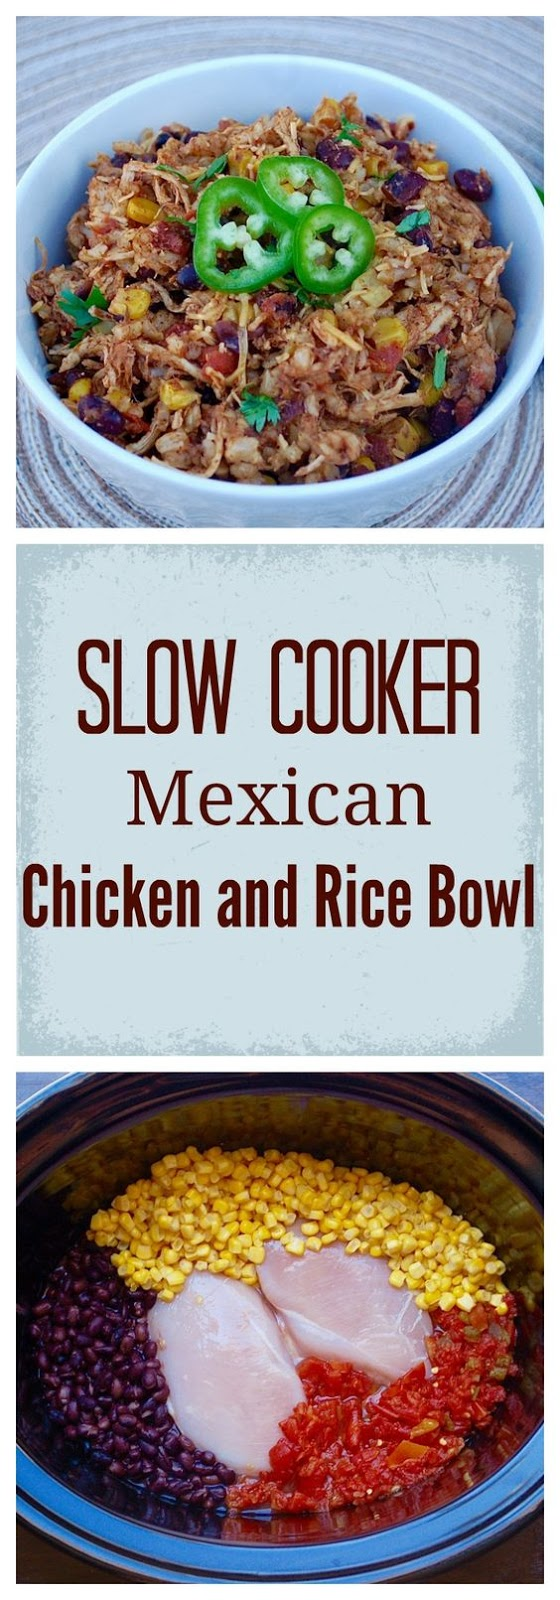 Best Slow Cooker Mexican Chicken and Rice Bowl